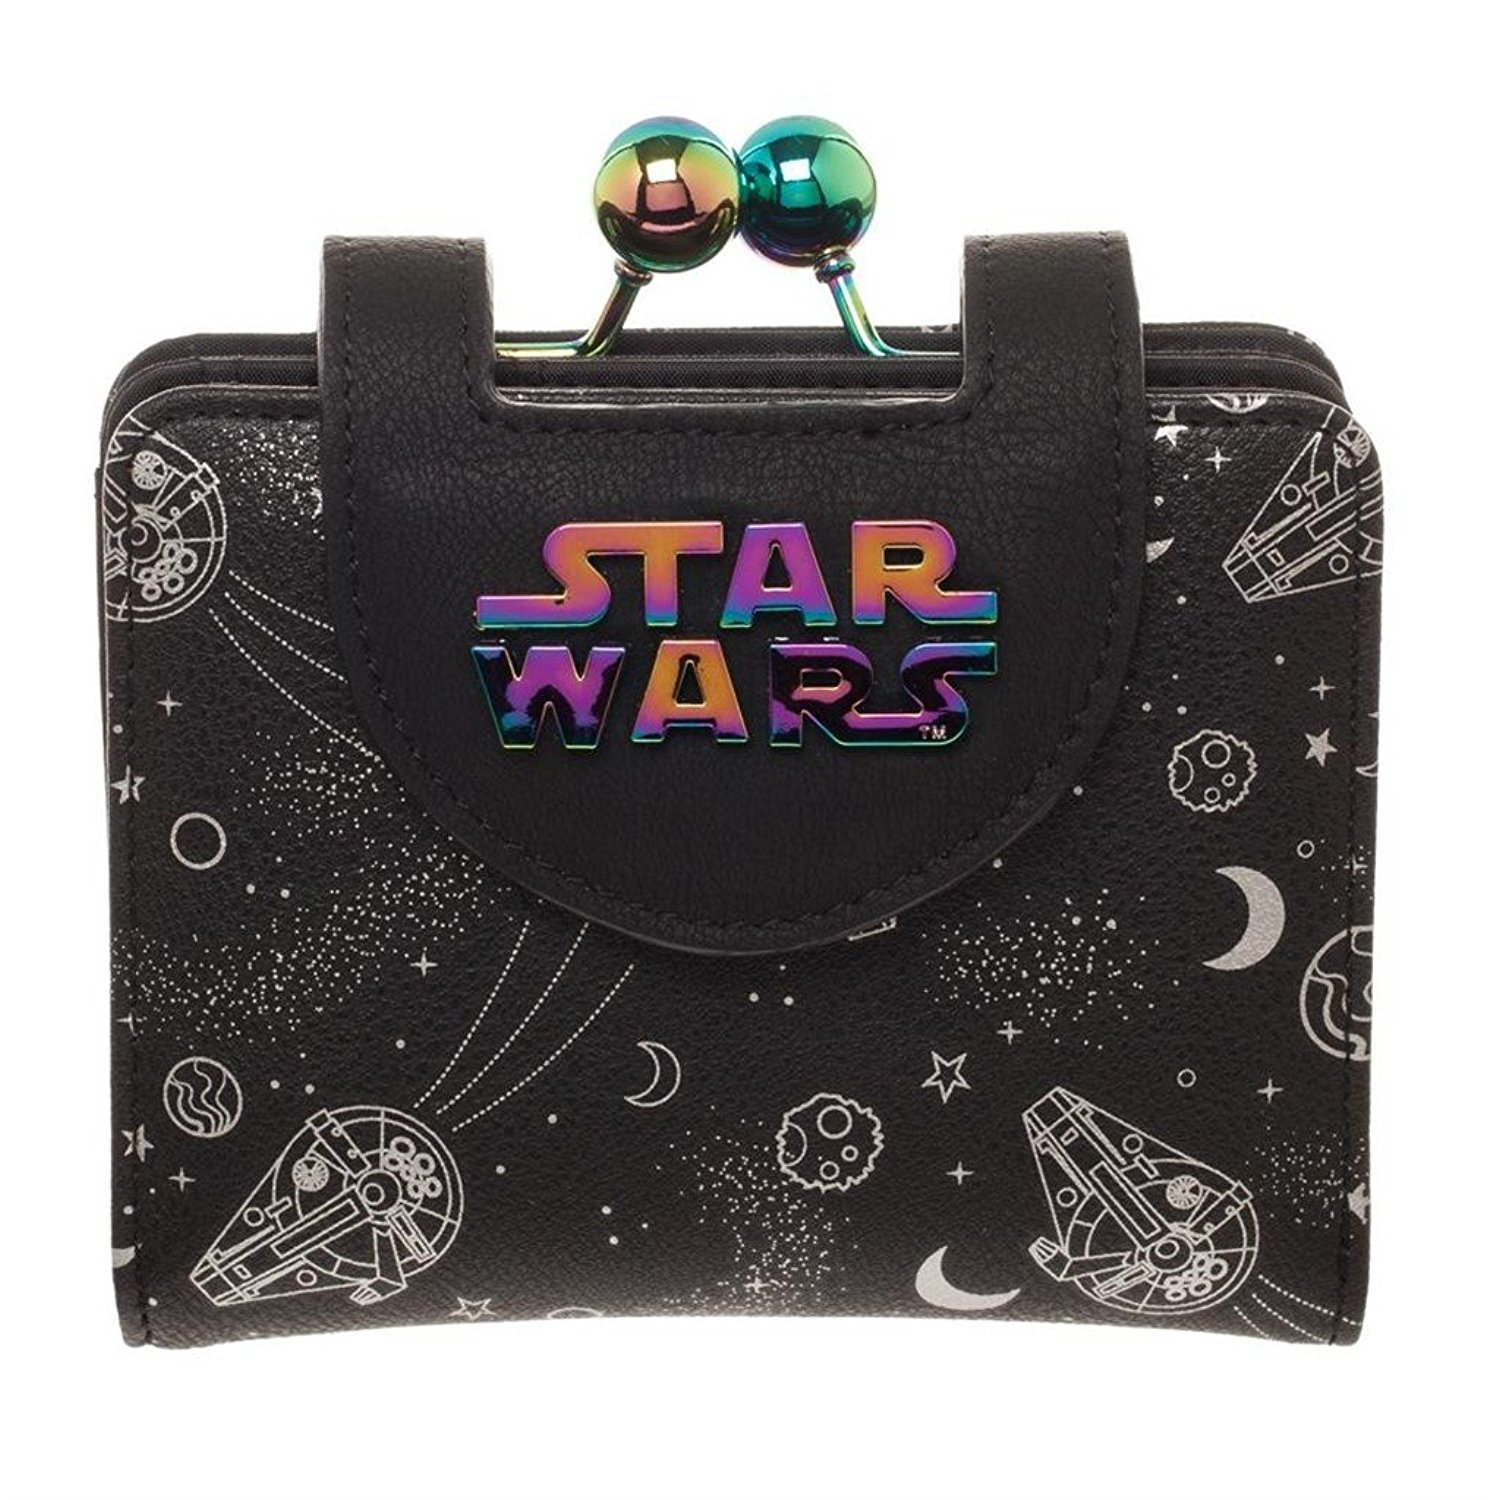 Bioworld x Solo A Star Wars Story Millennium Falcon Iridescent Kisslock Wallet on Amazon